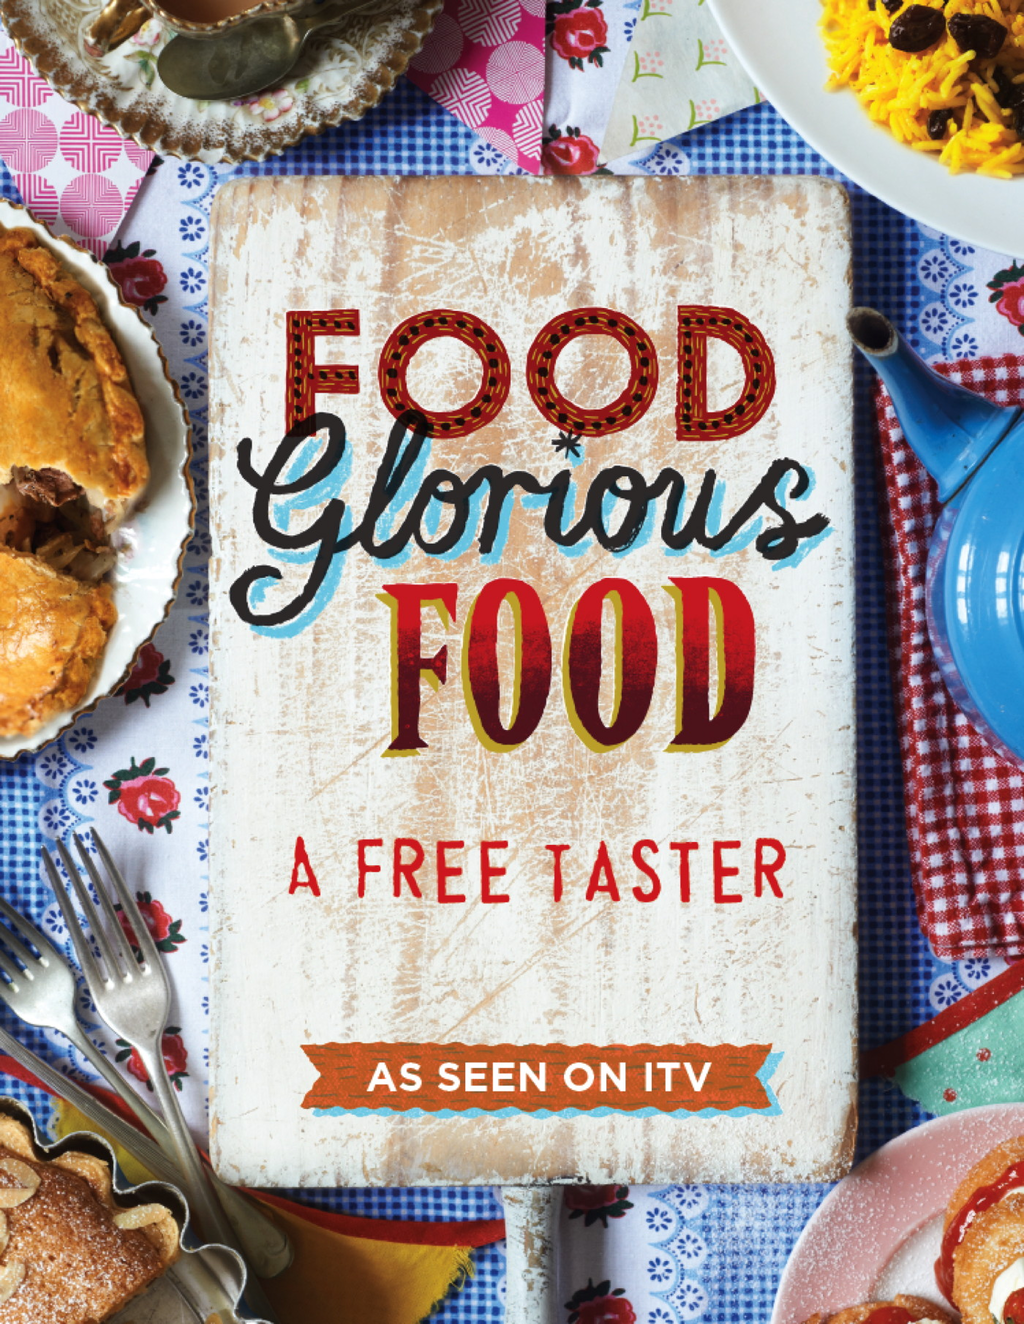 Food Glorious Food From Cakes to Curries to Cornish Pasties ? Favourite Dishes from the Search for Britain's Best Recipe